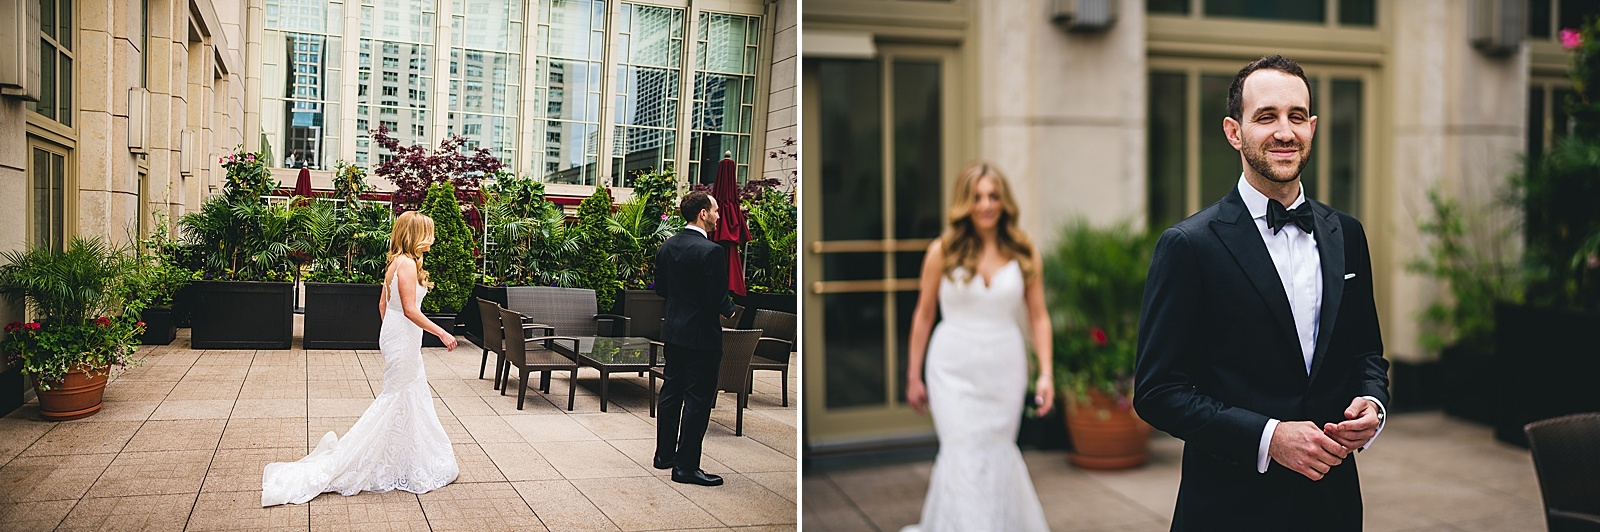 16 first look at peninsula hotel in chicago - Susie + Eric's Jewish Wedding at the Peninsula Hotel in Chicago